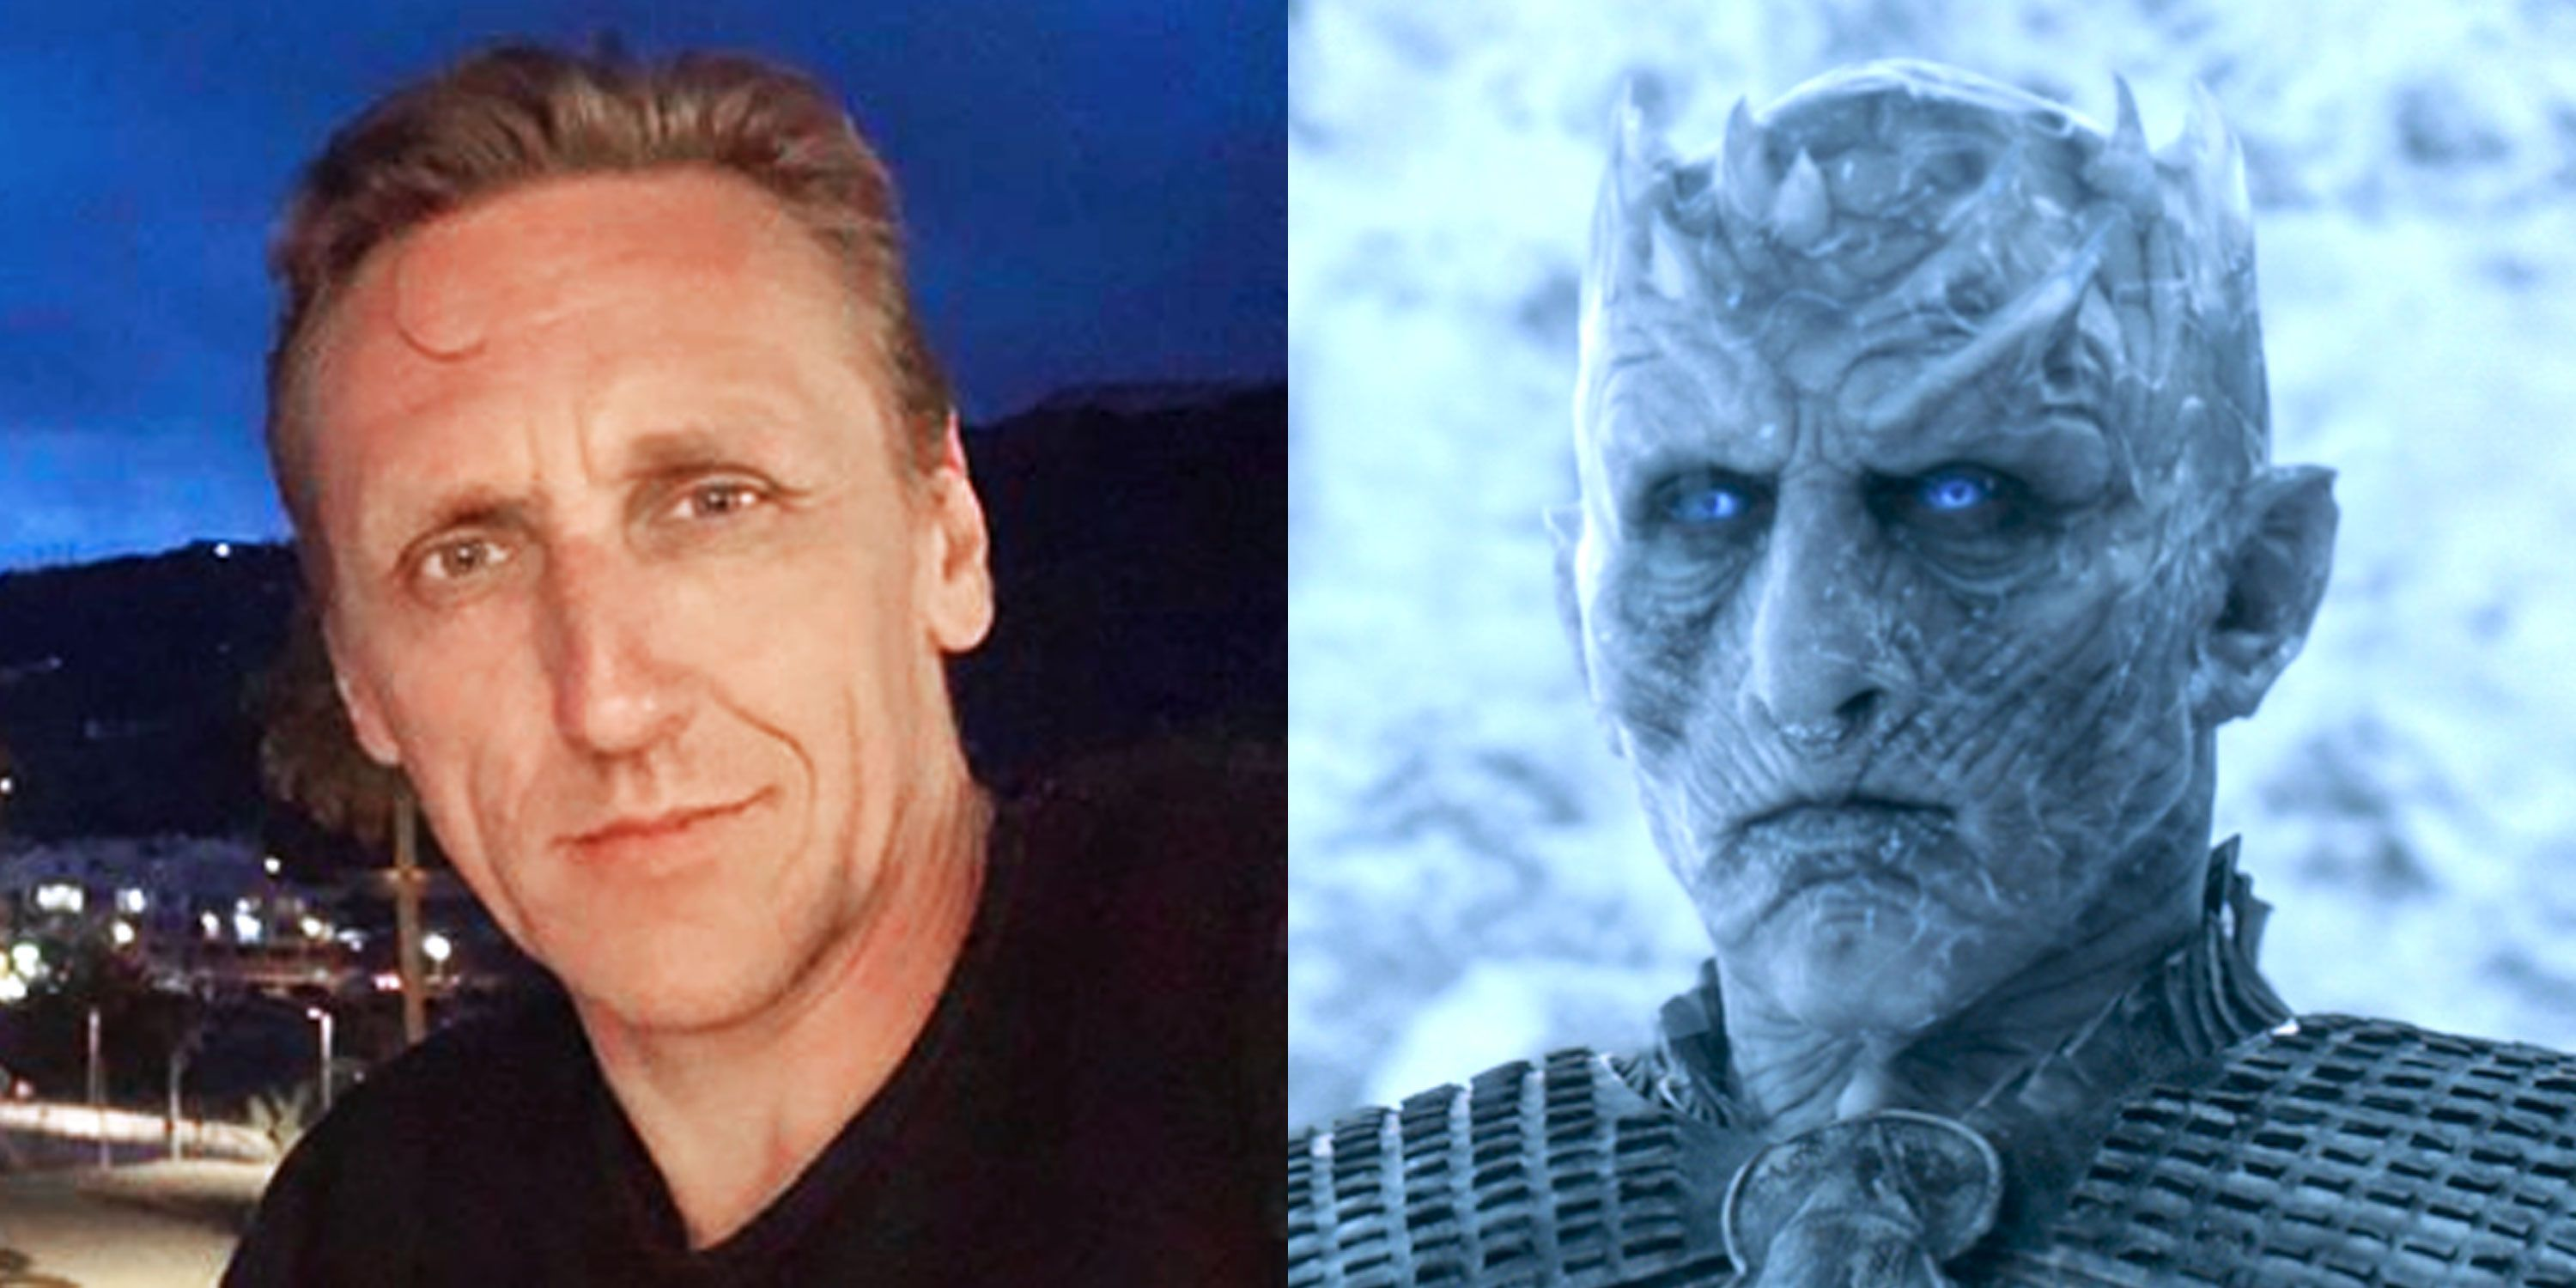 Who Is Vladimir Furdik Who Plays The Night King On Game Of Thrones